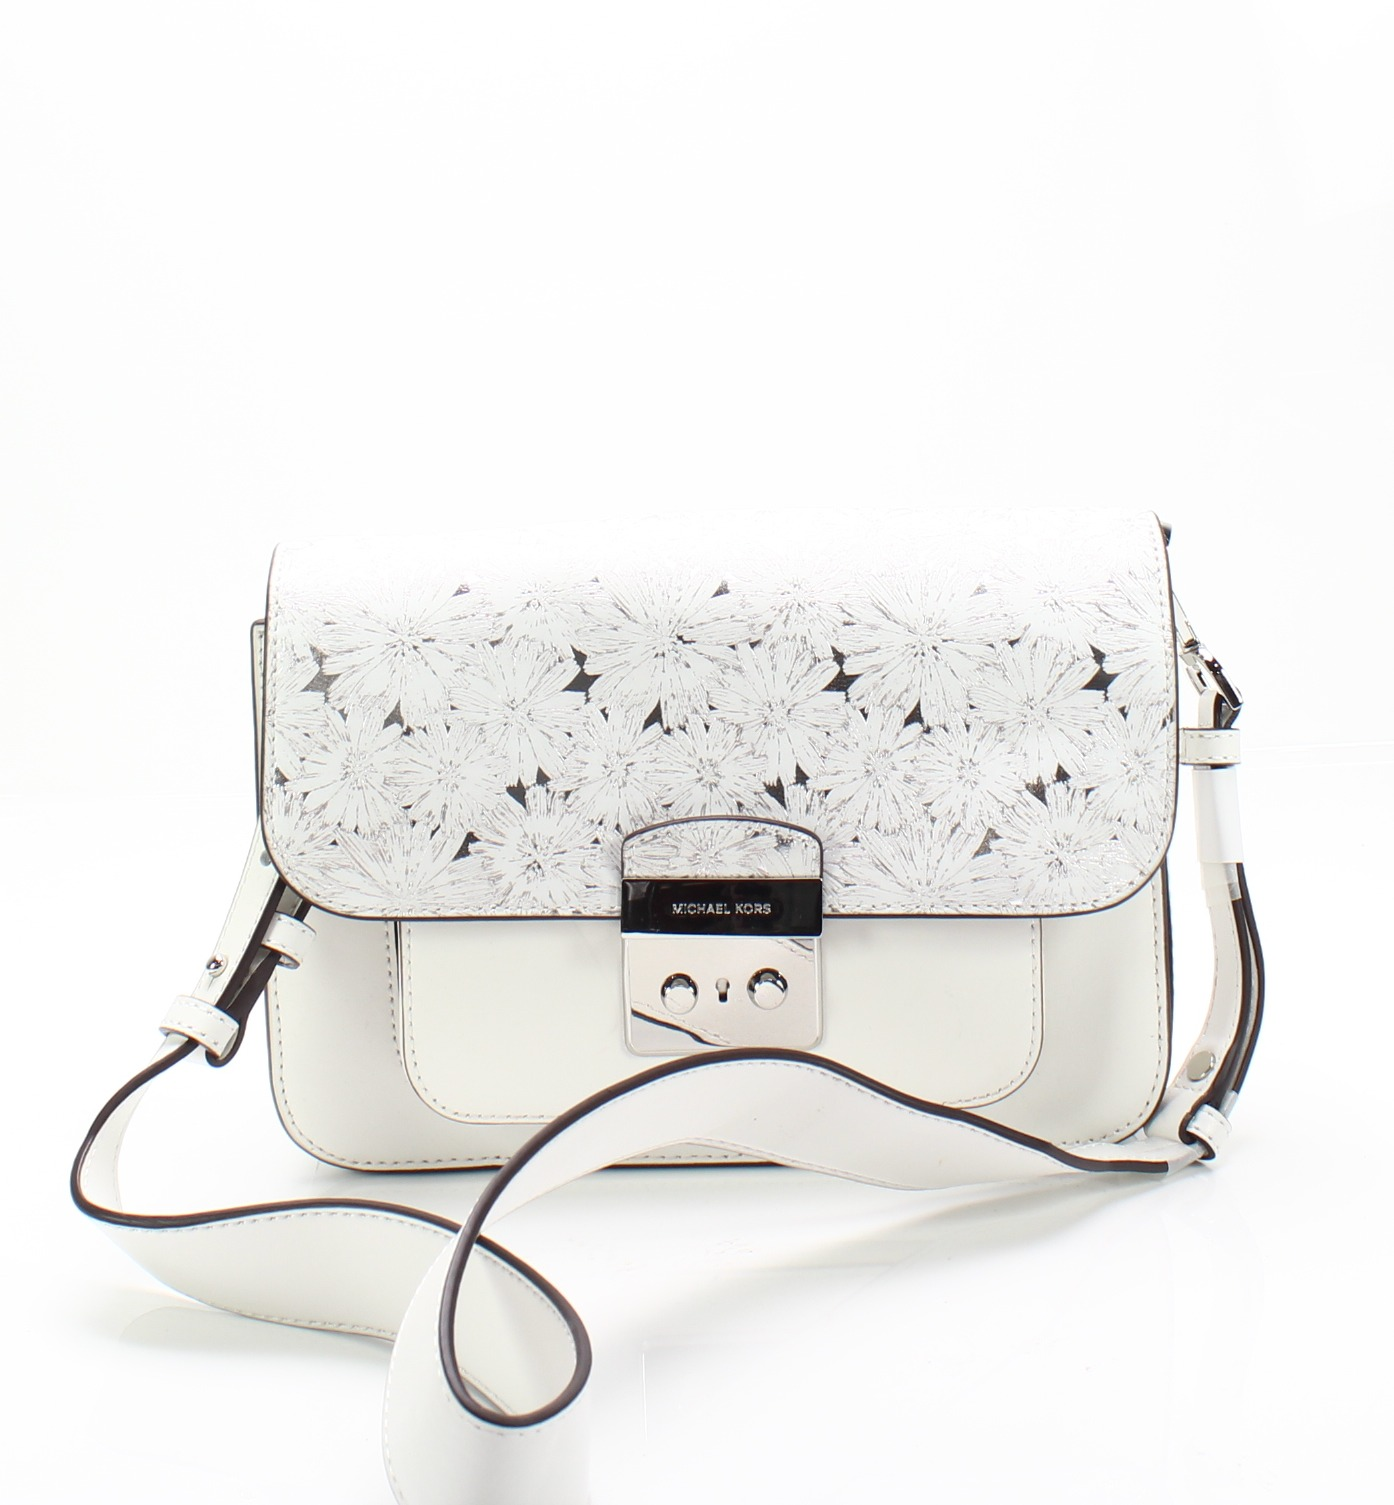 c79a12d08e7f Details about Michael Kors NEW White Silver Sloan Editor Large Leather  Shoulder Bag $328- #026